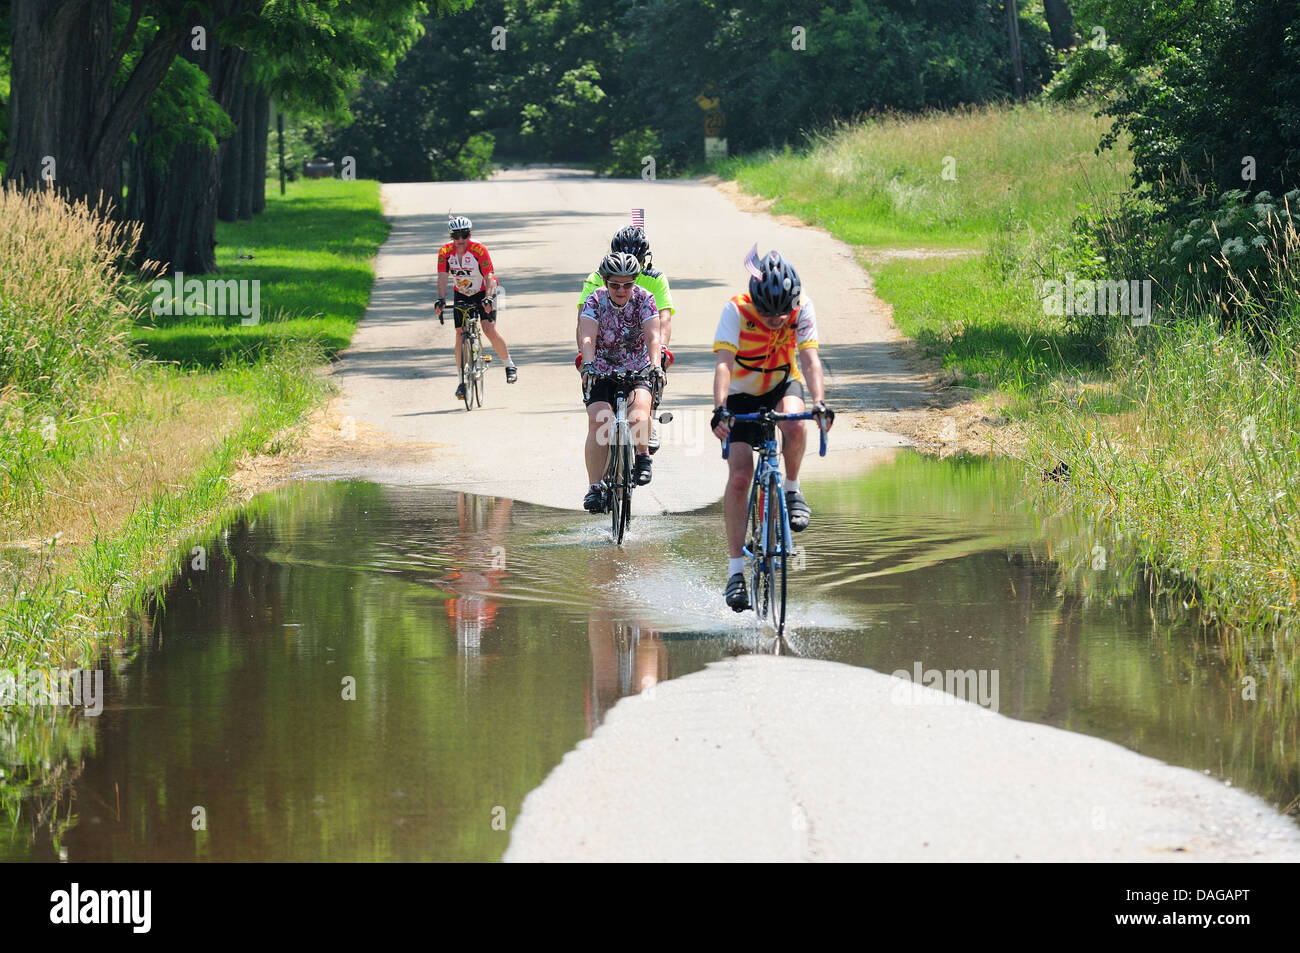 Bicyclists traveling on partially flooded country road. - Stock Image